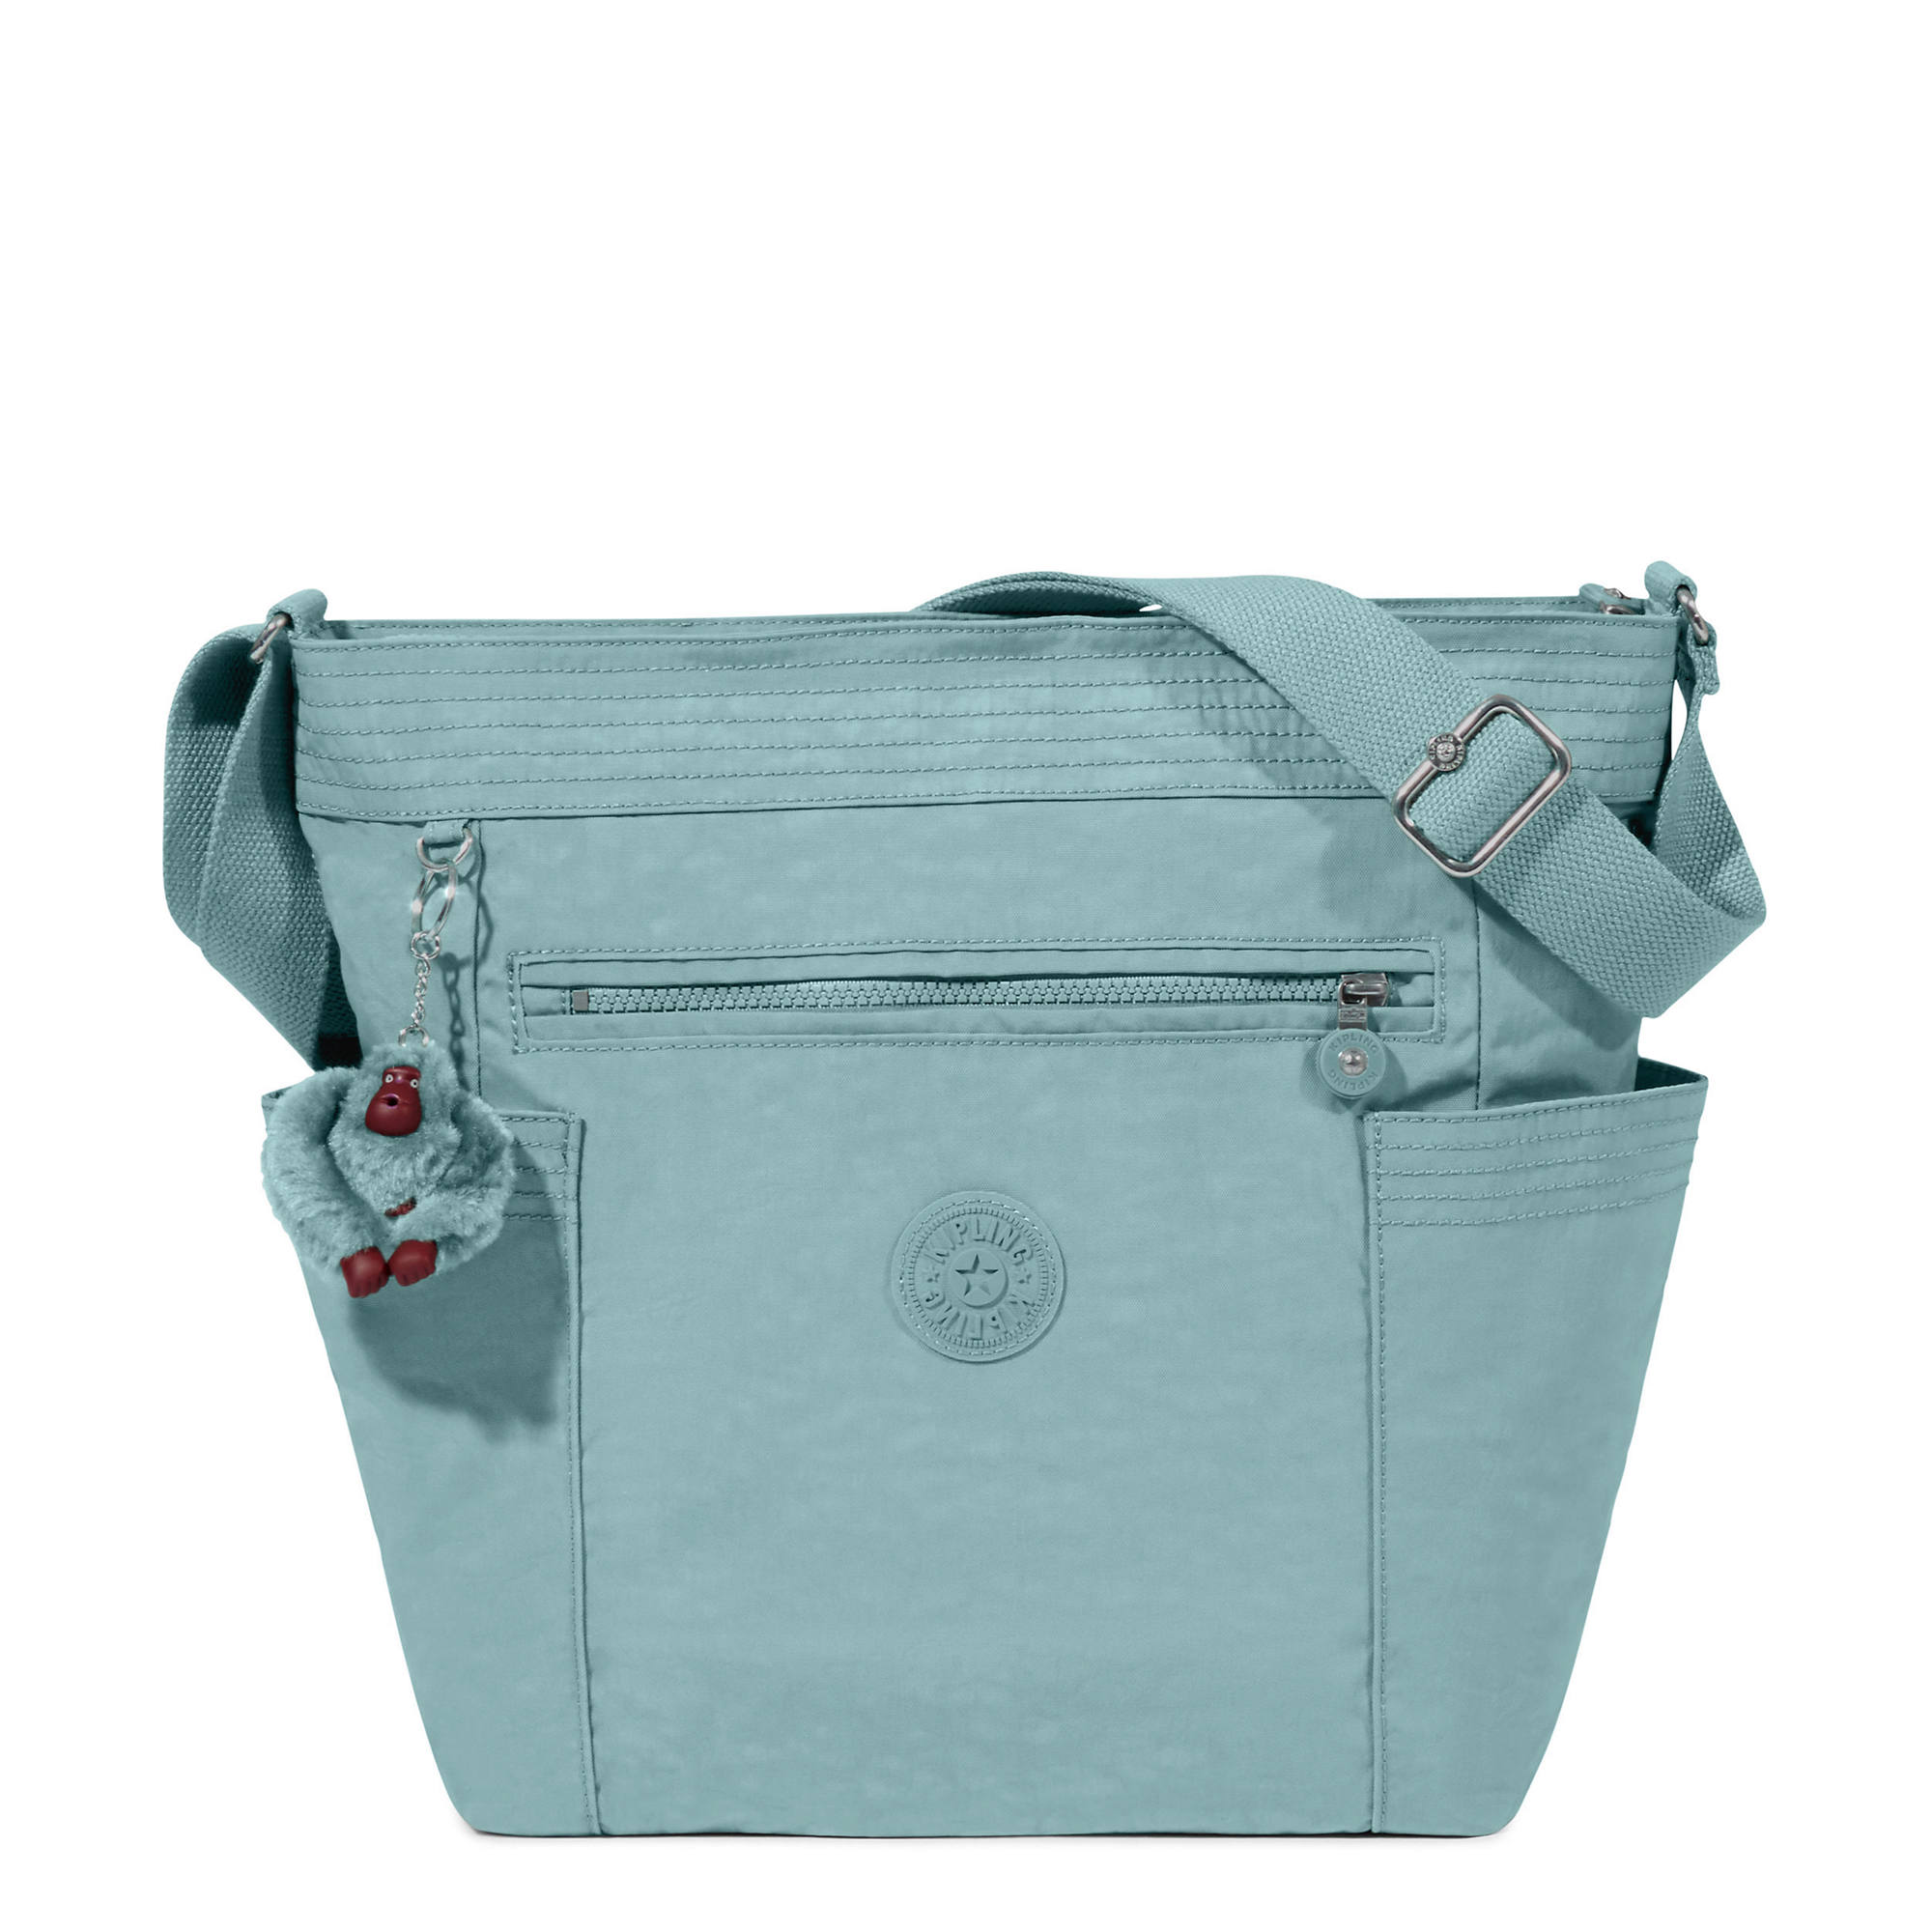 Melvin Handbag Sea Green Large